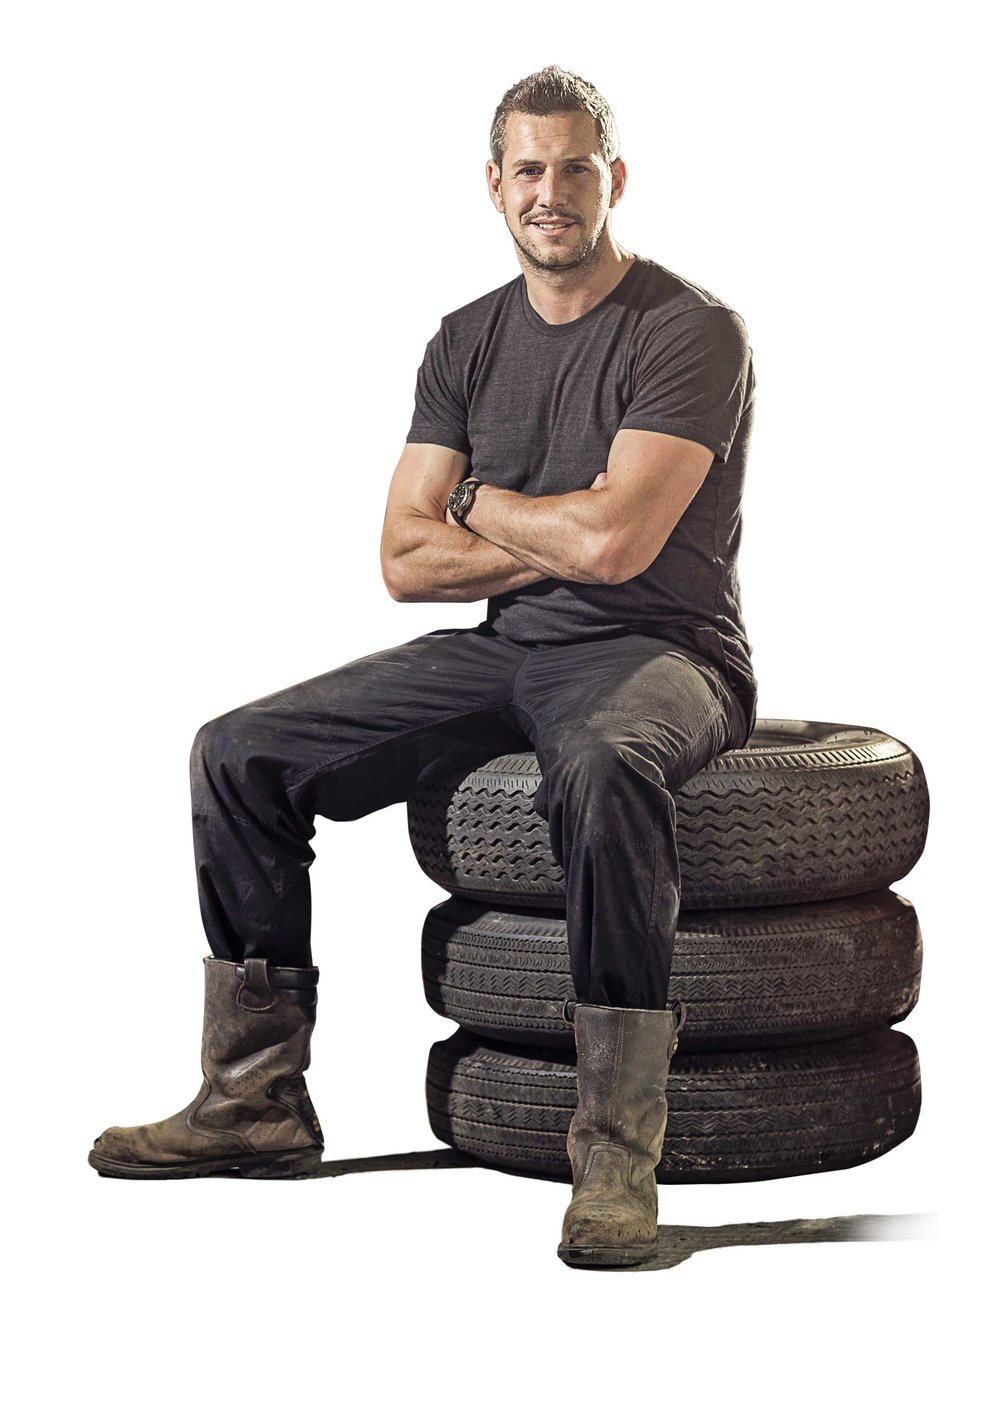 ANT ANSTEAD - Car restoration guru and engineer extraordinaire Ant has joined Wheeler Dealers - and now Practical Classics! You can read his new column in the latest issue.